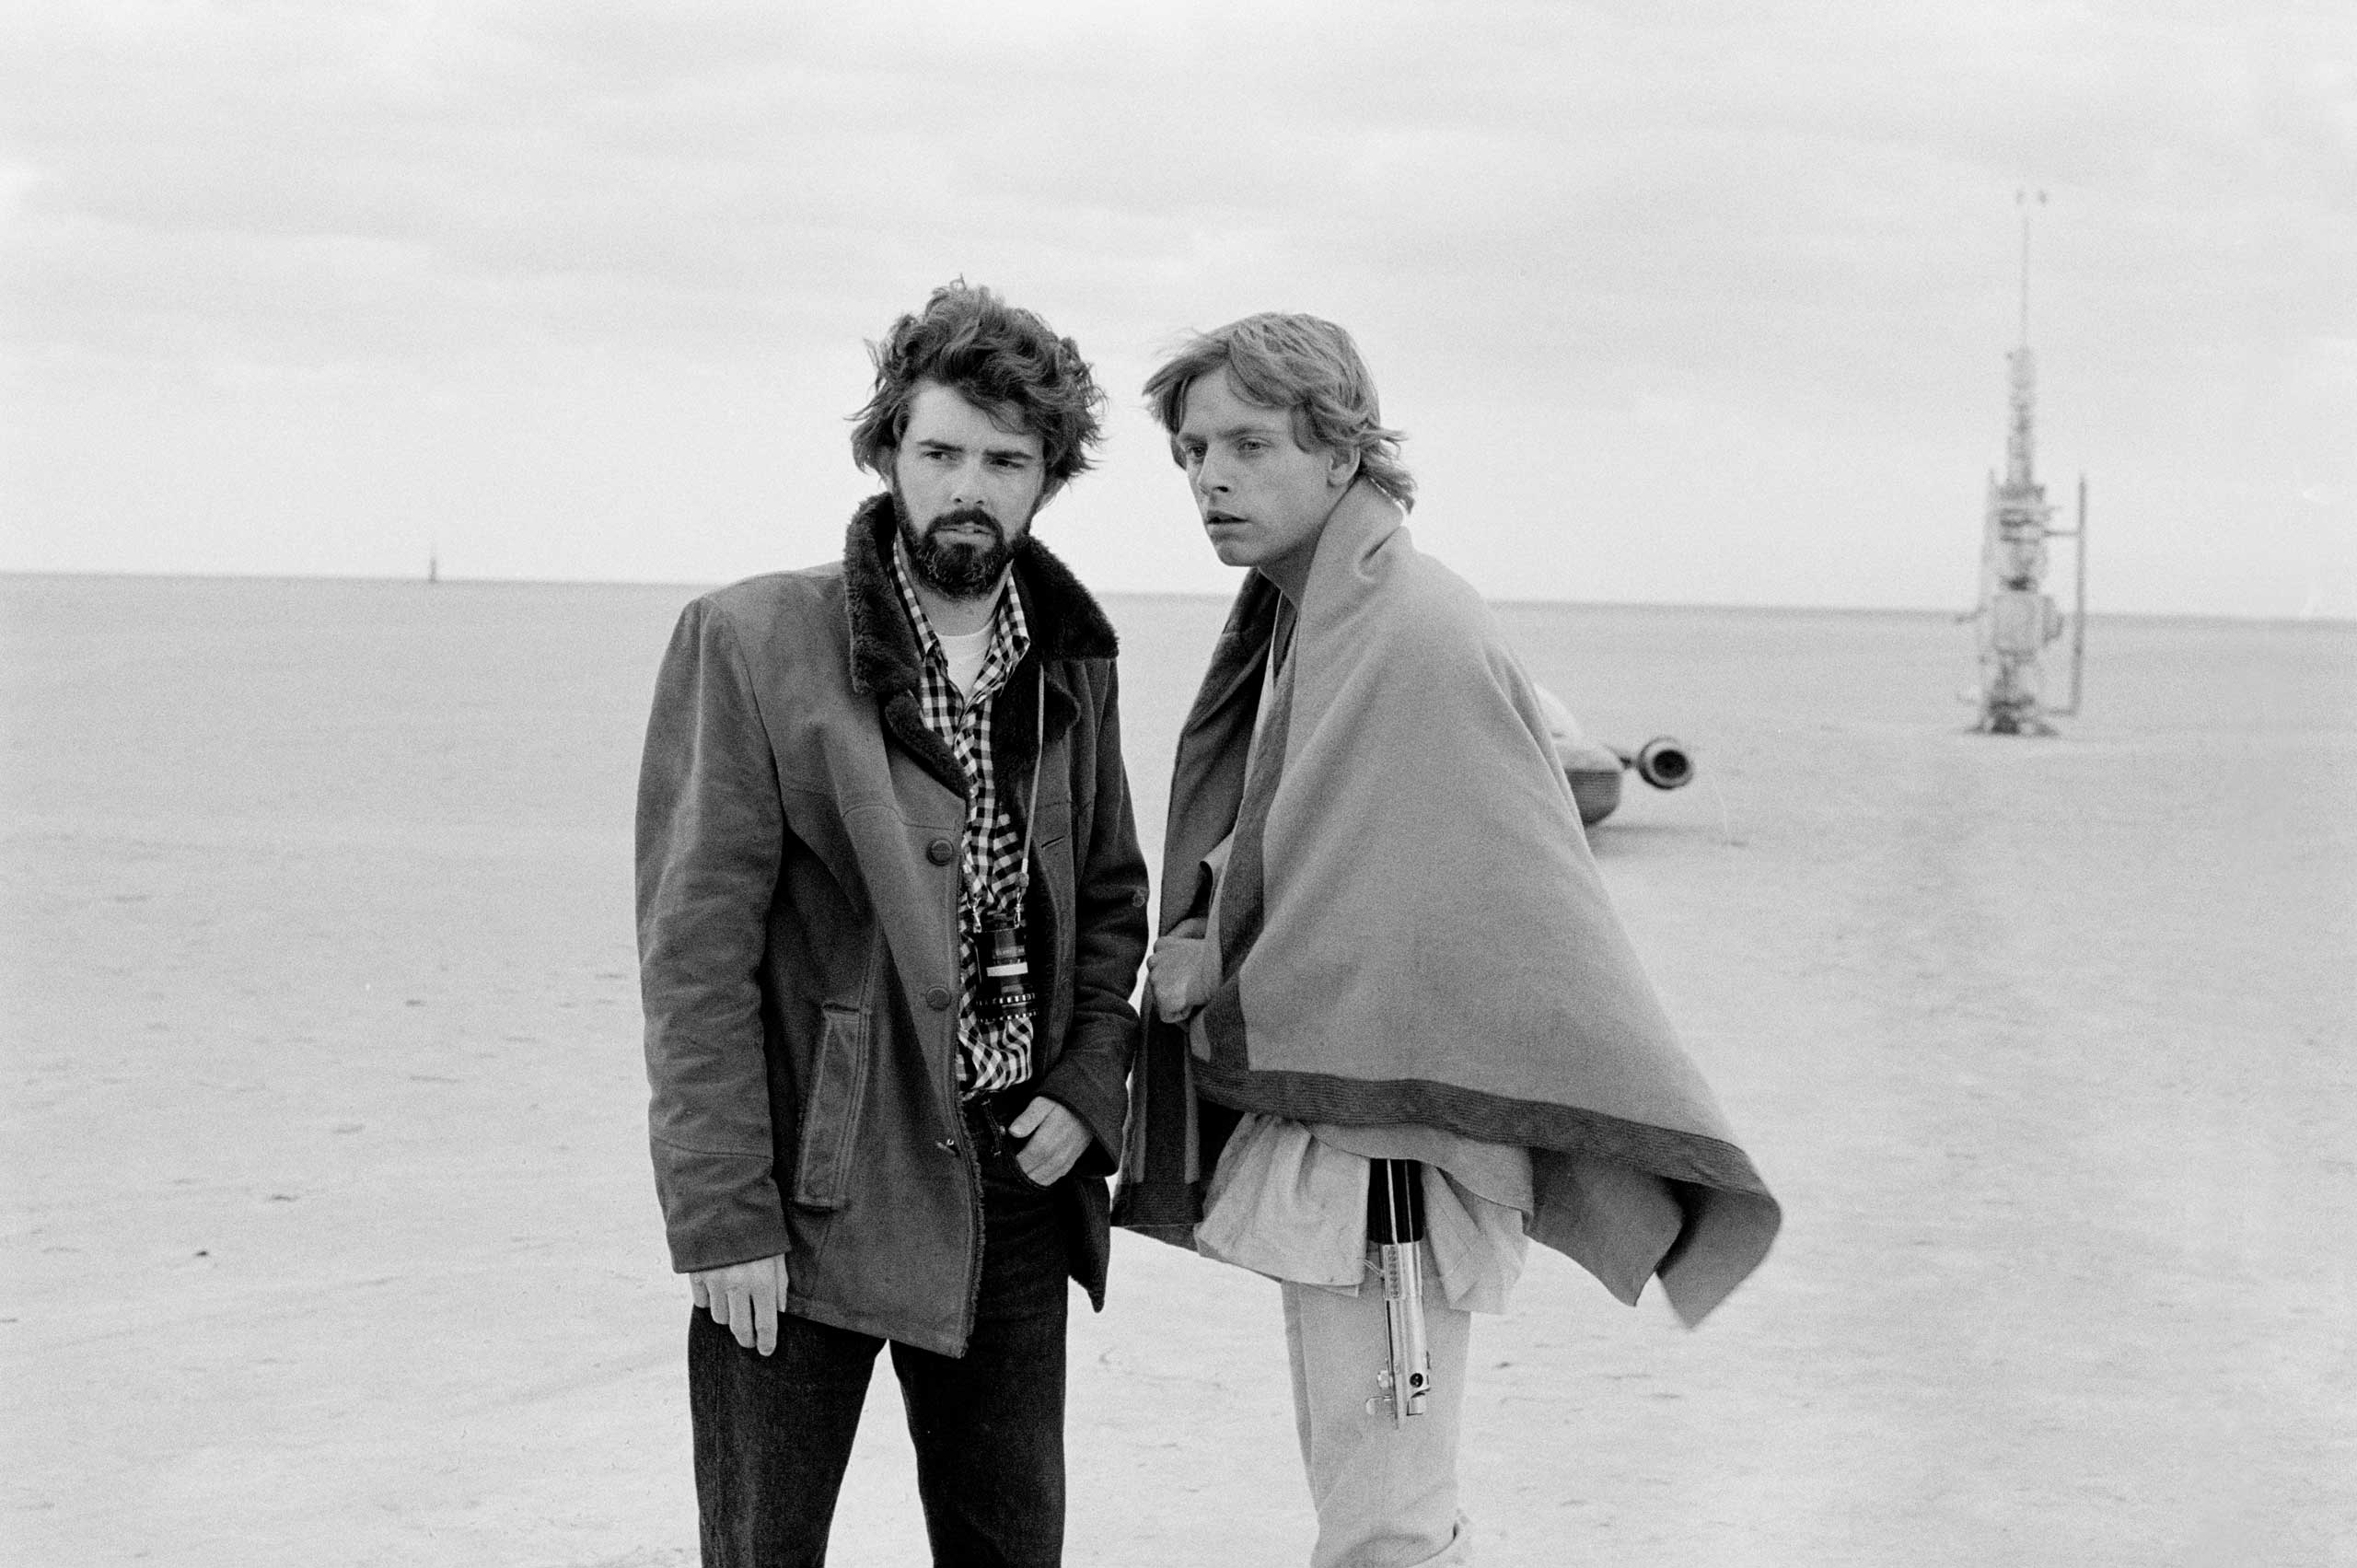 George Lucas and Mark Hamill (Luke Skywalker) on the set of <i>Star Wars: Episode IV - A New Hope</i> in a galaxy far, far away.